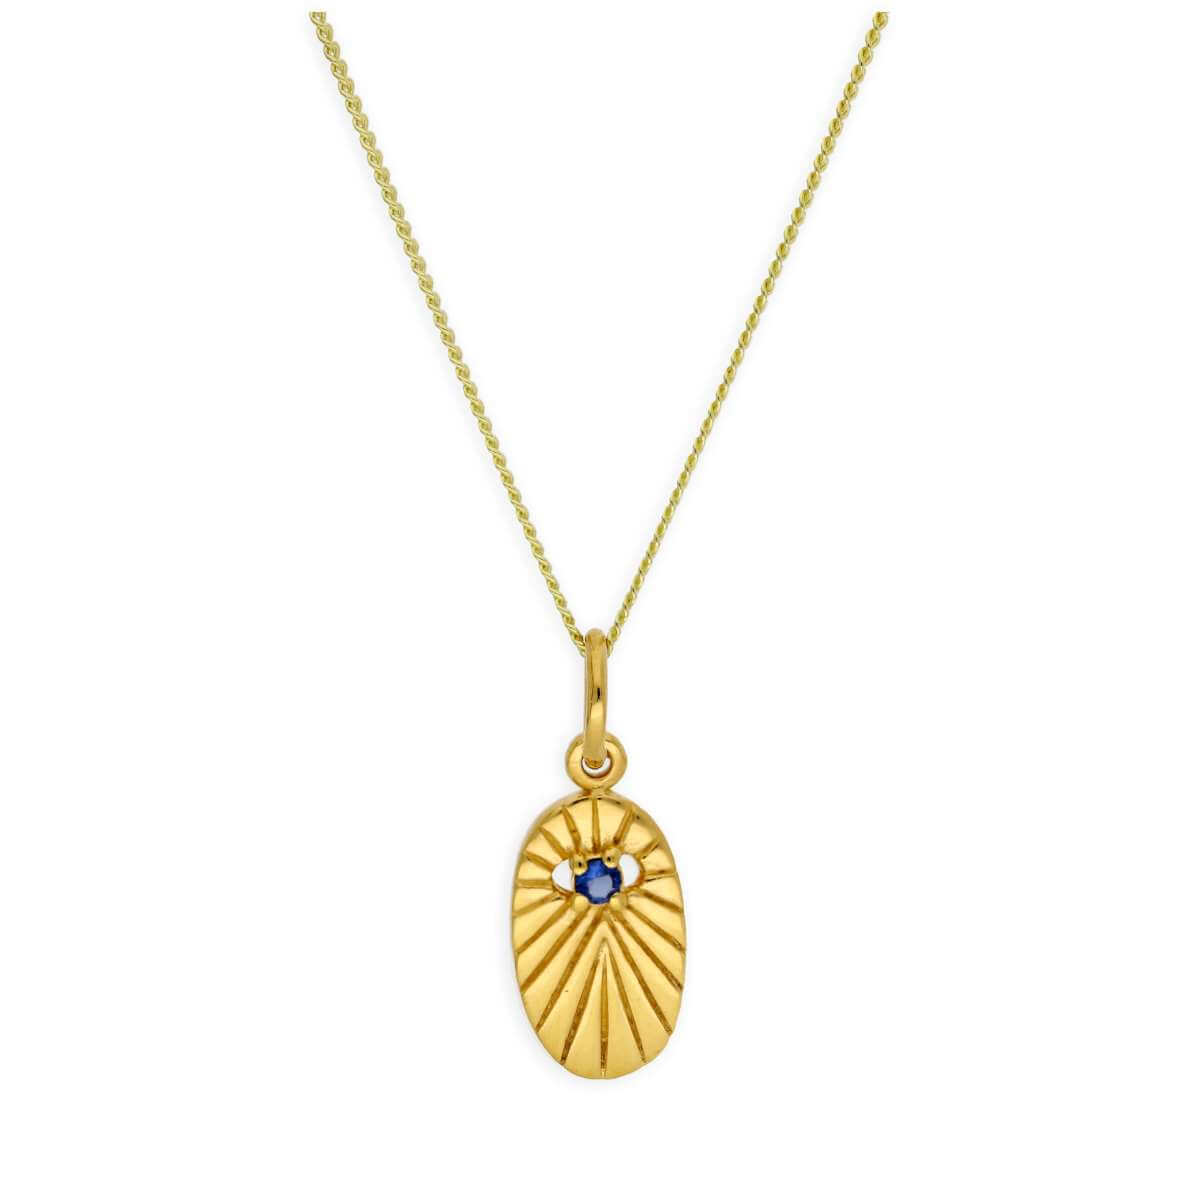 Gold Plated Sterling Silver Star Oval Medallion Necklace 14-32 Inches